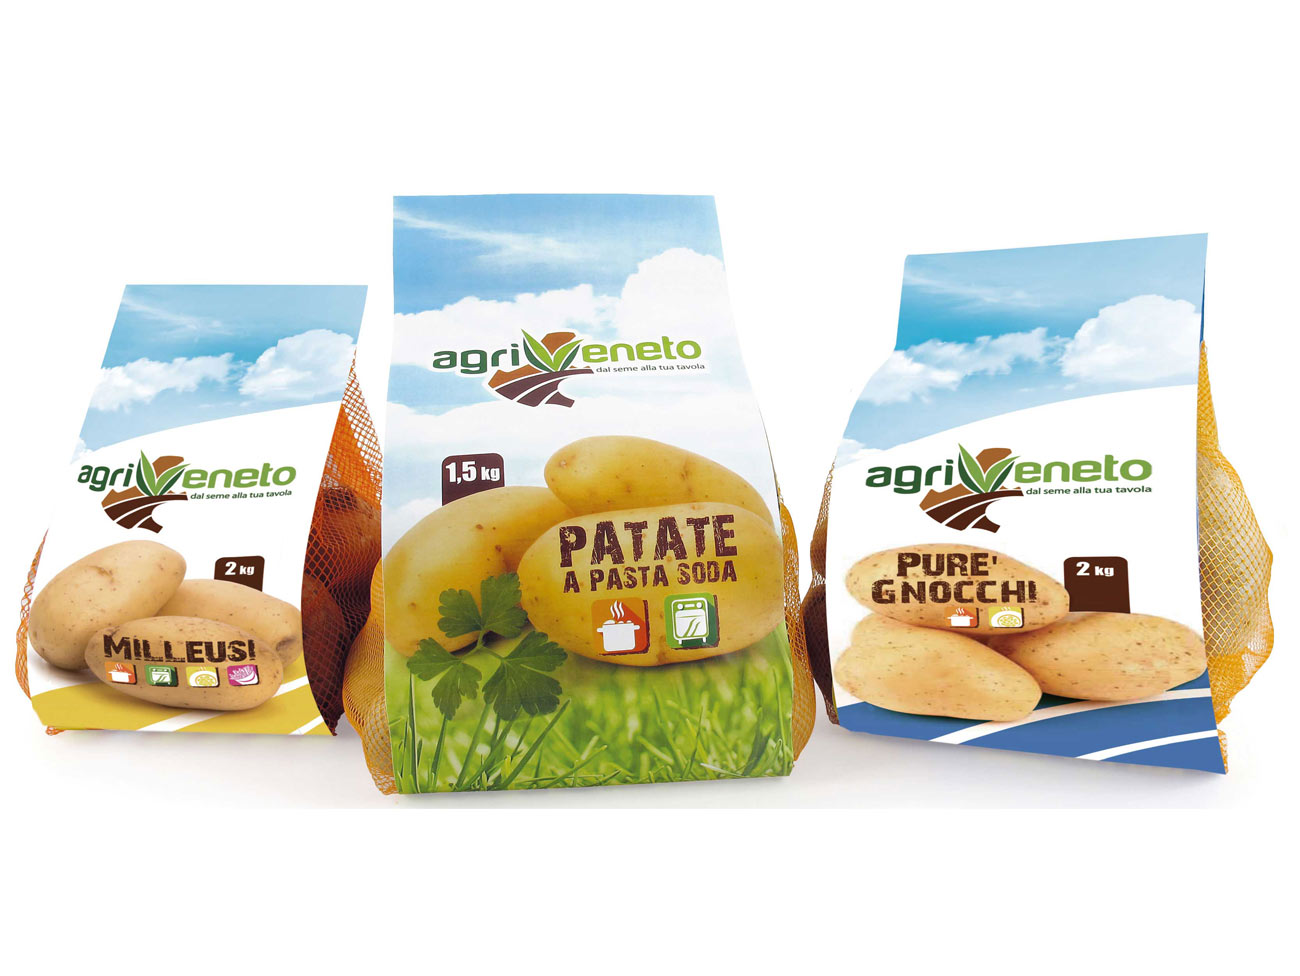 patate agriveento spa.jpg